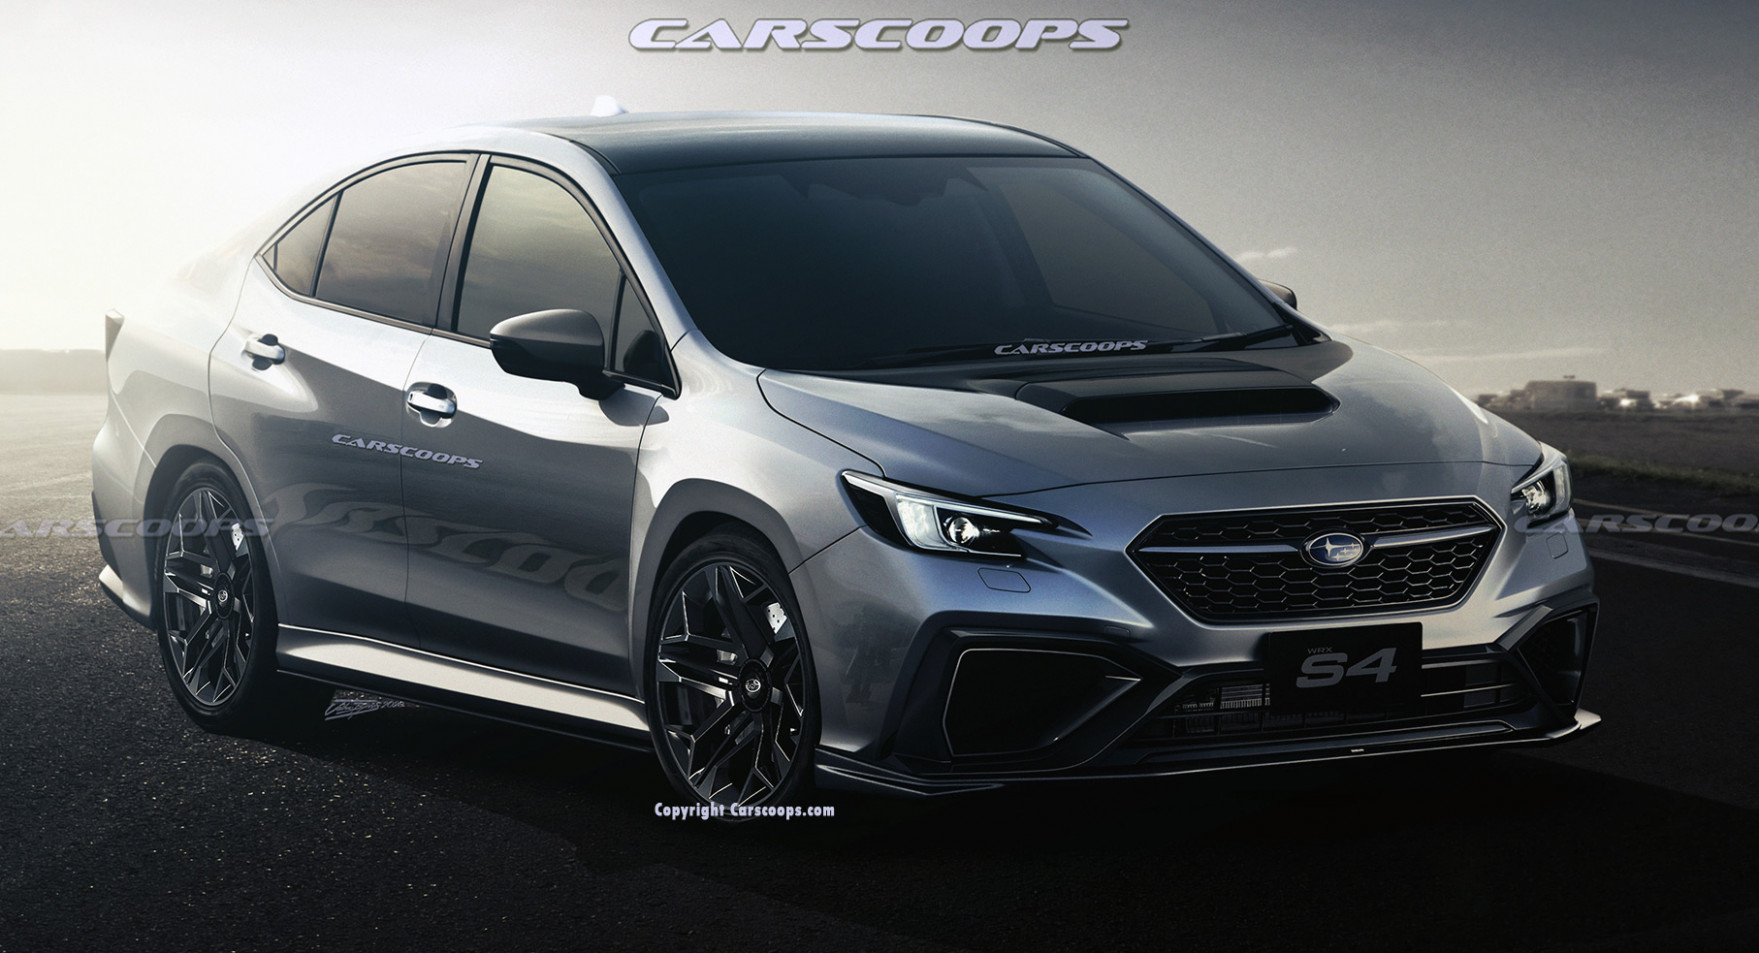 Redesign and Concept 2022 Subaru Legacy